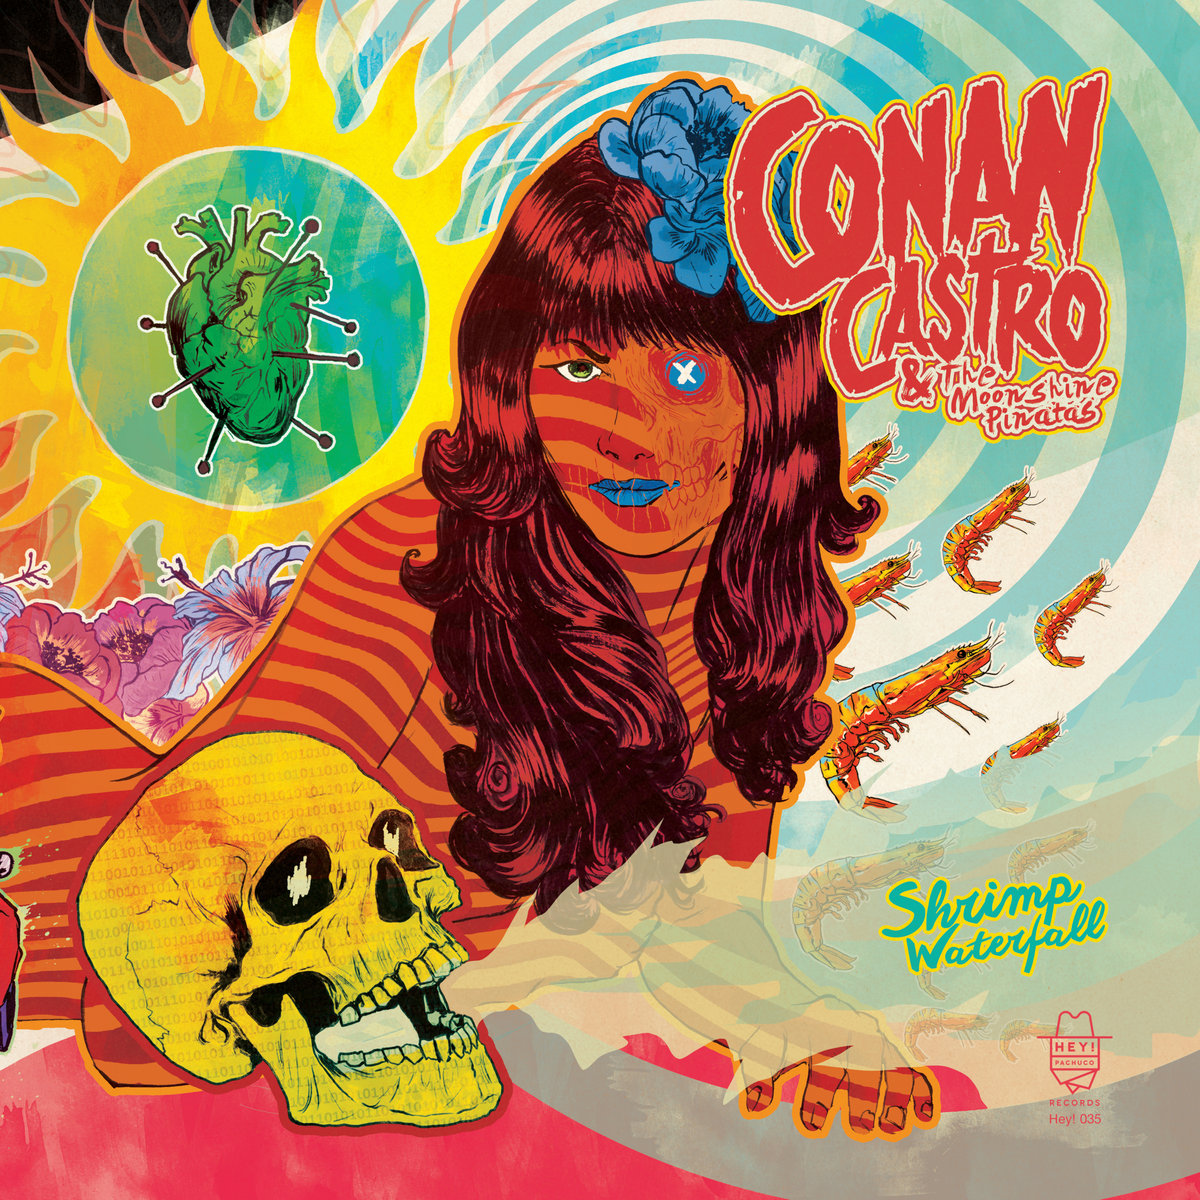 STREAM: Conan Castro and the Moonshine Piñatas - Shrimp Waterfall